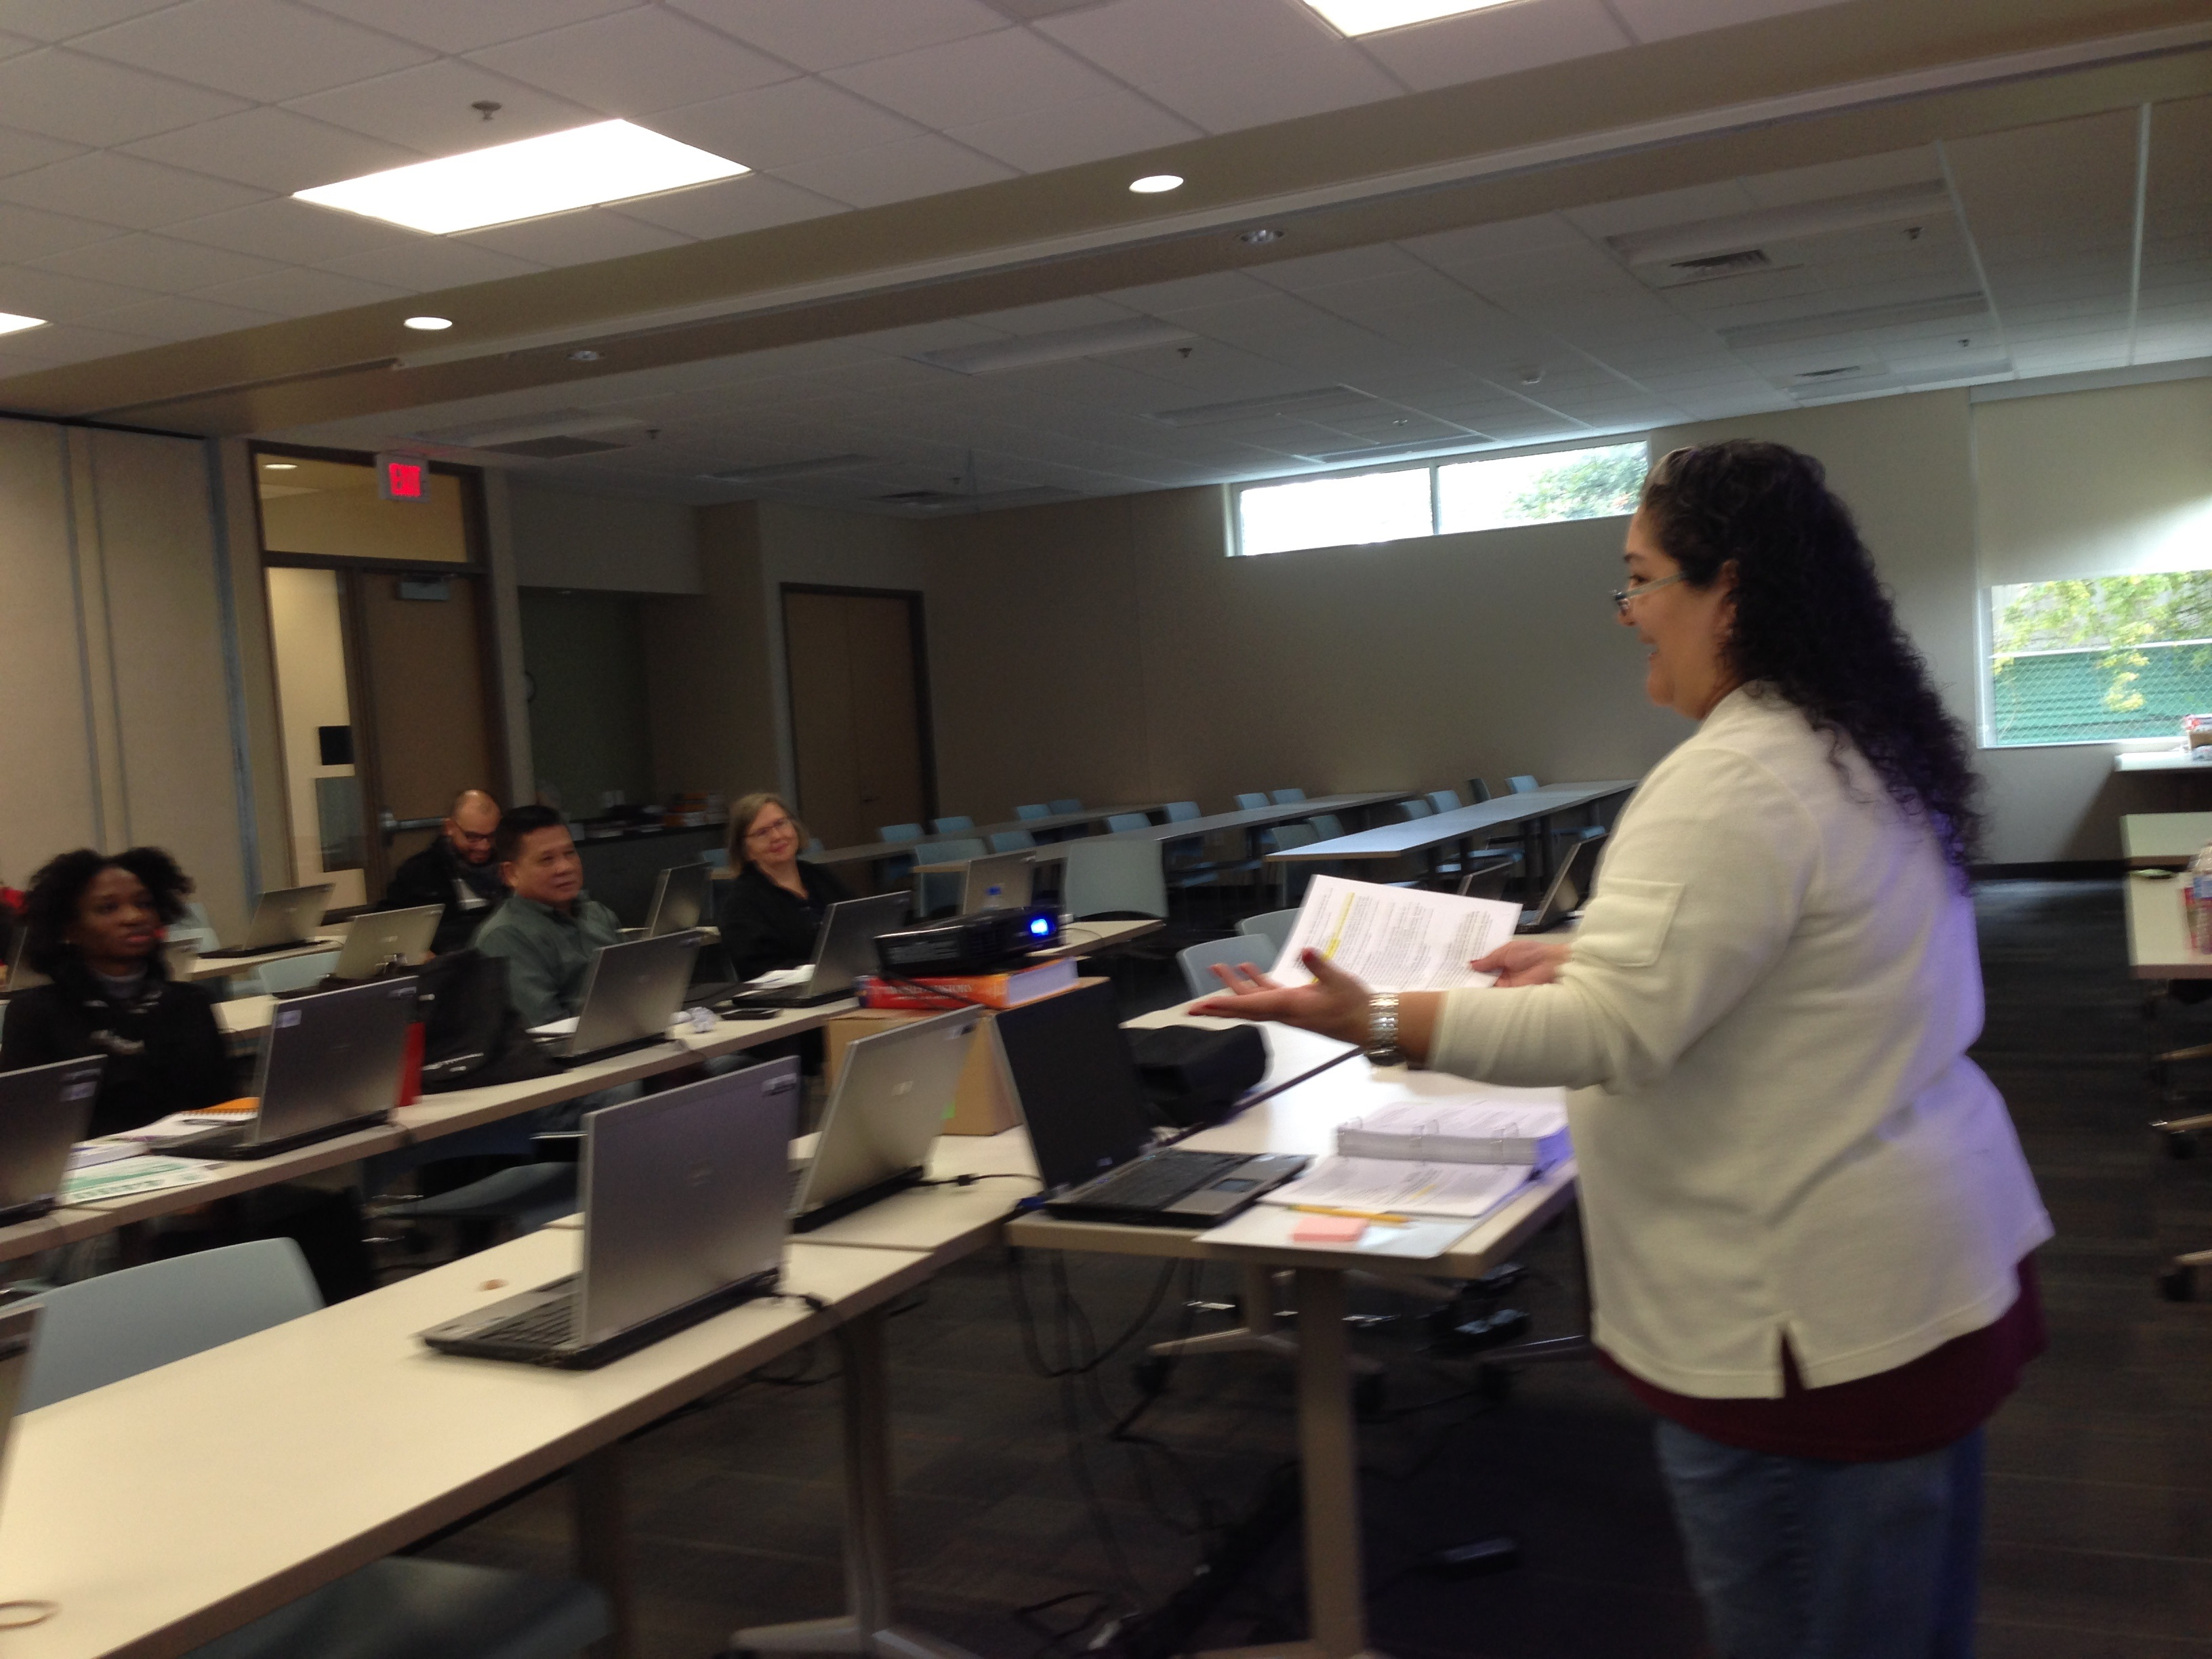 Neighborhood centers trains volunteers to help houston residents alba hernandez teaches the first session of the tax preparation course organized by neighborhood centers in 1betcityfo Image collections